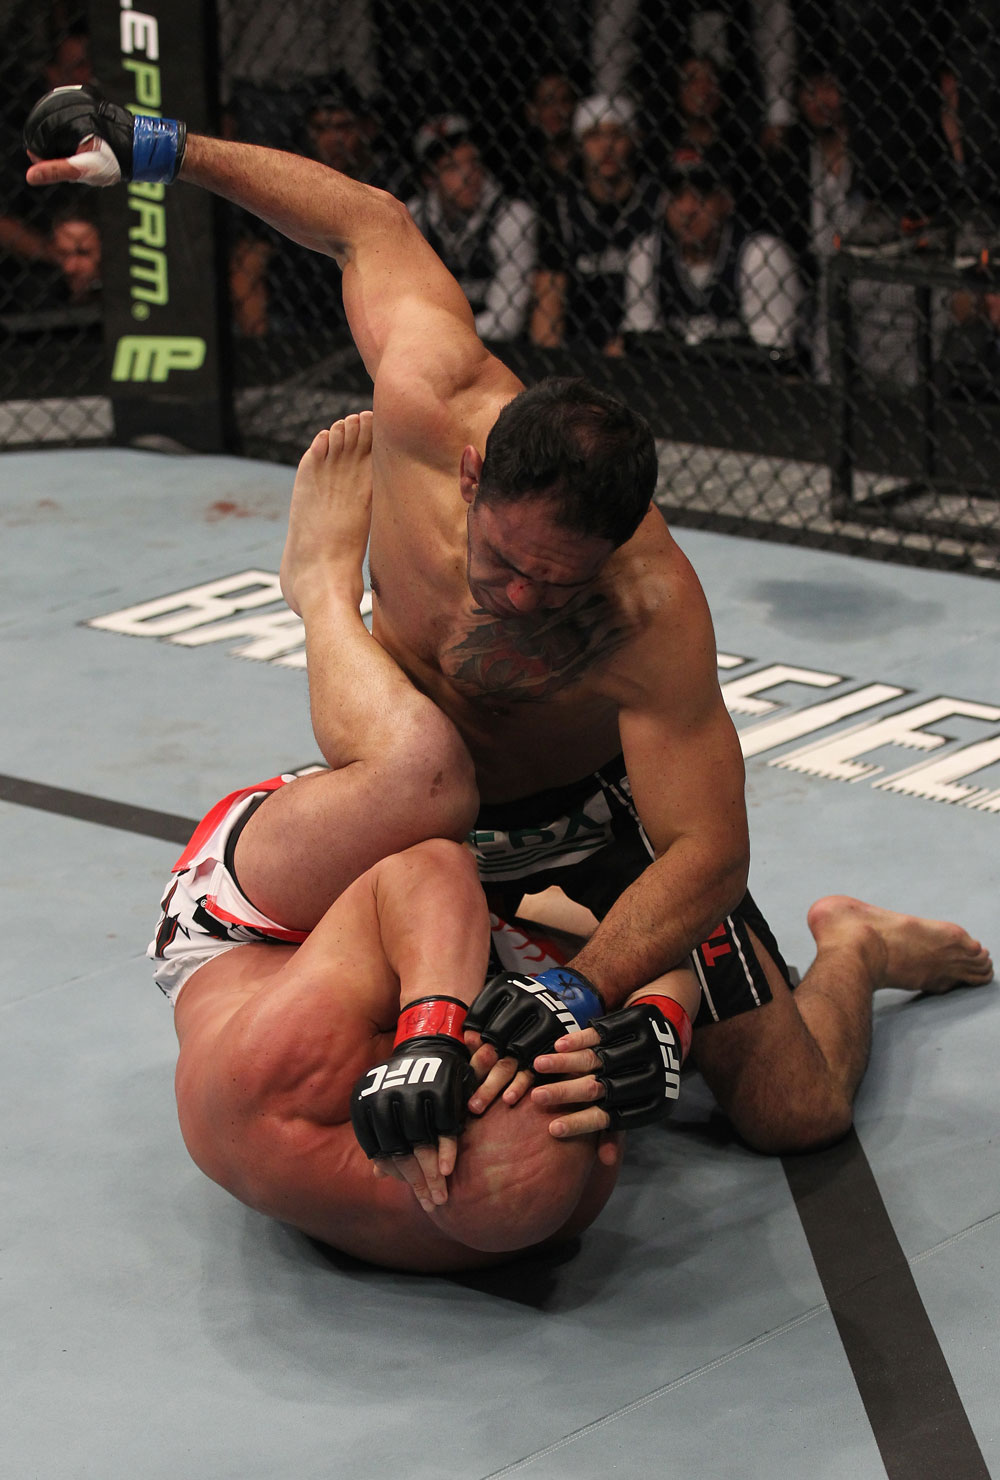 TORONTO, ON - DECEMBER 10:  Antonio Rogerio Nogueira (top) punches Tito Ortiz during the UFC 140 event at Air Canada Centre on December 10, 2011 in Toronto, Ontario, Canada.  (Photo by Nick Laham/Zuffa LLC/Zuffa LLC via Getty Images)